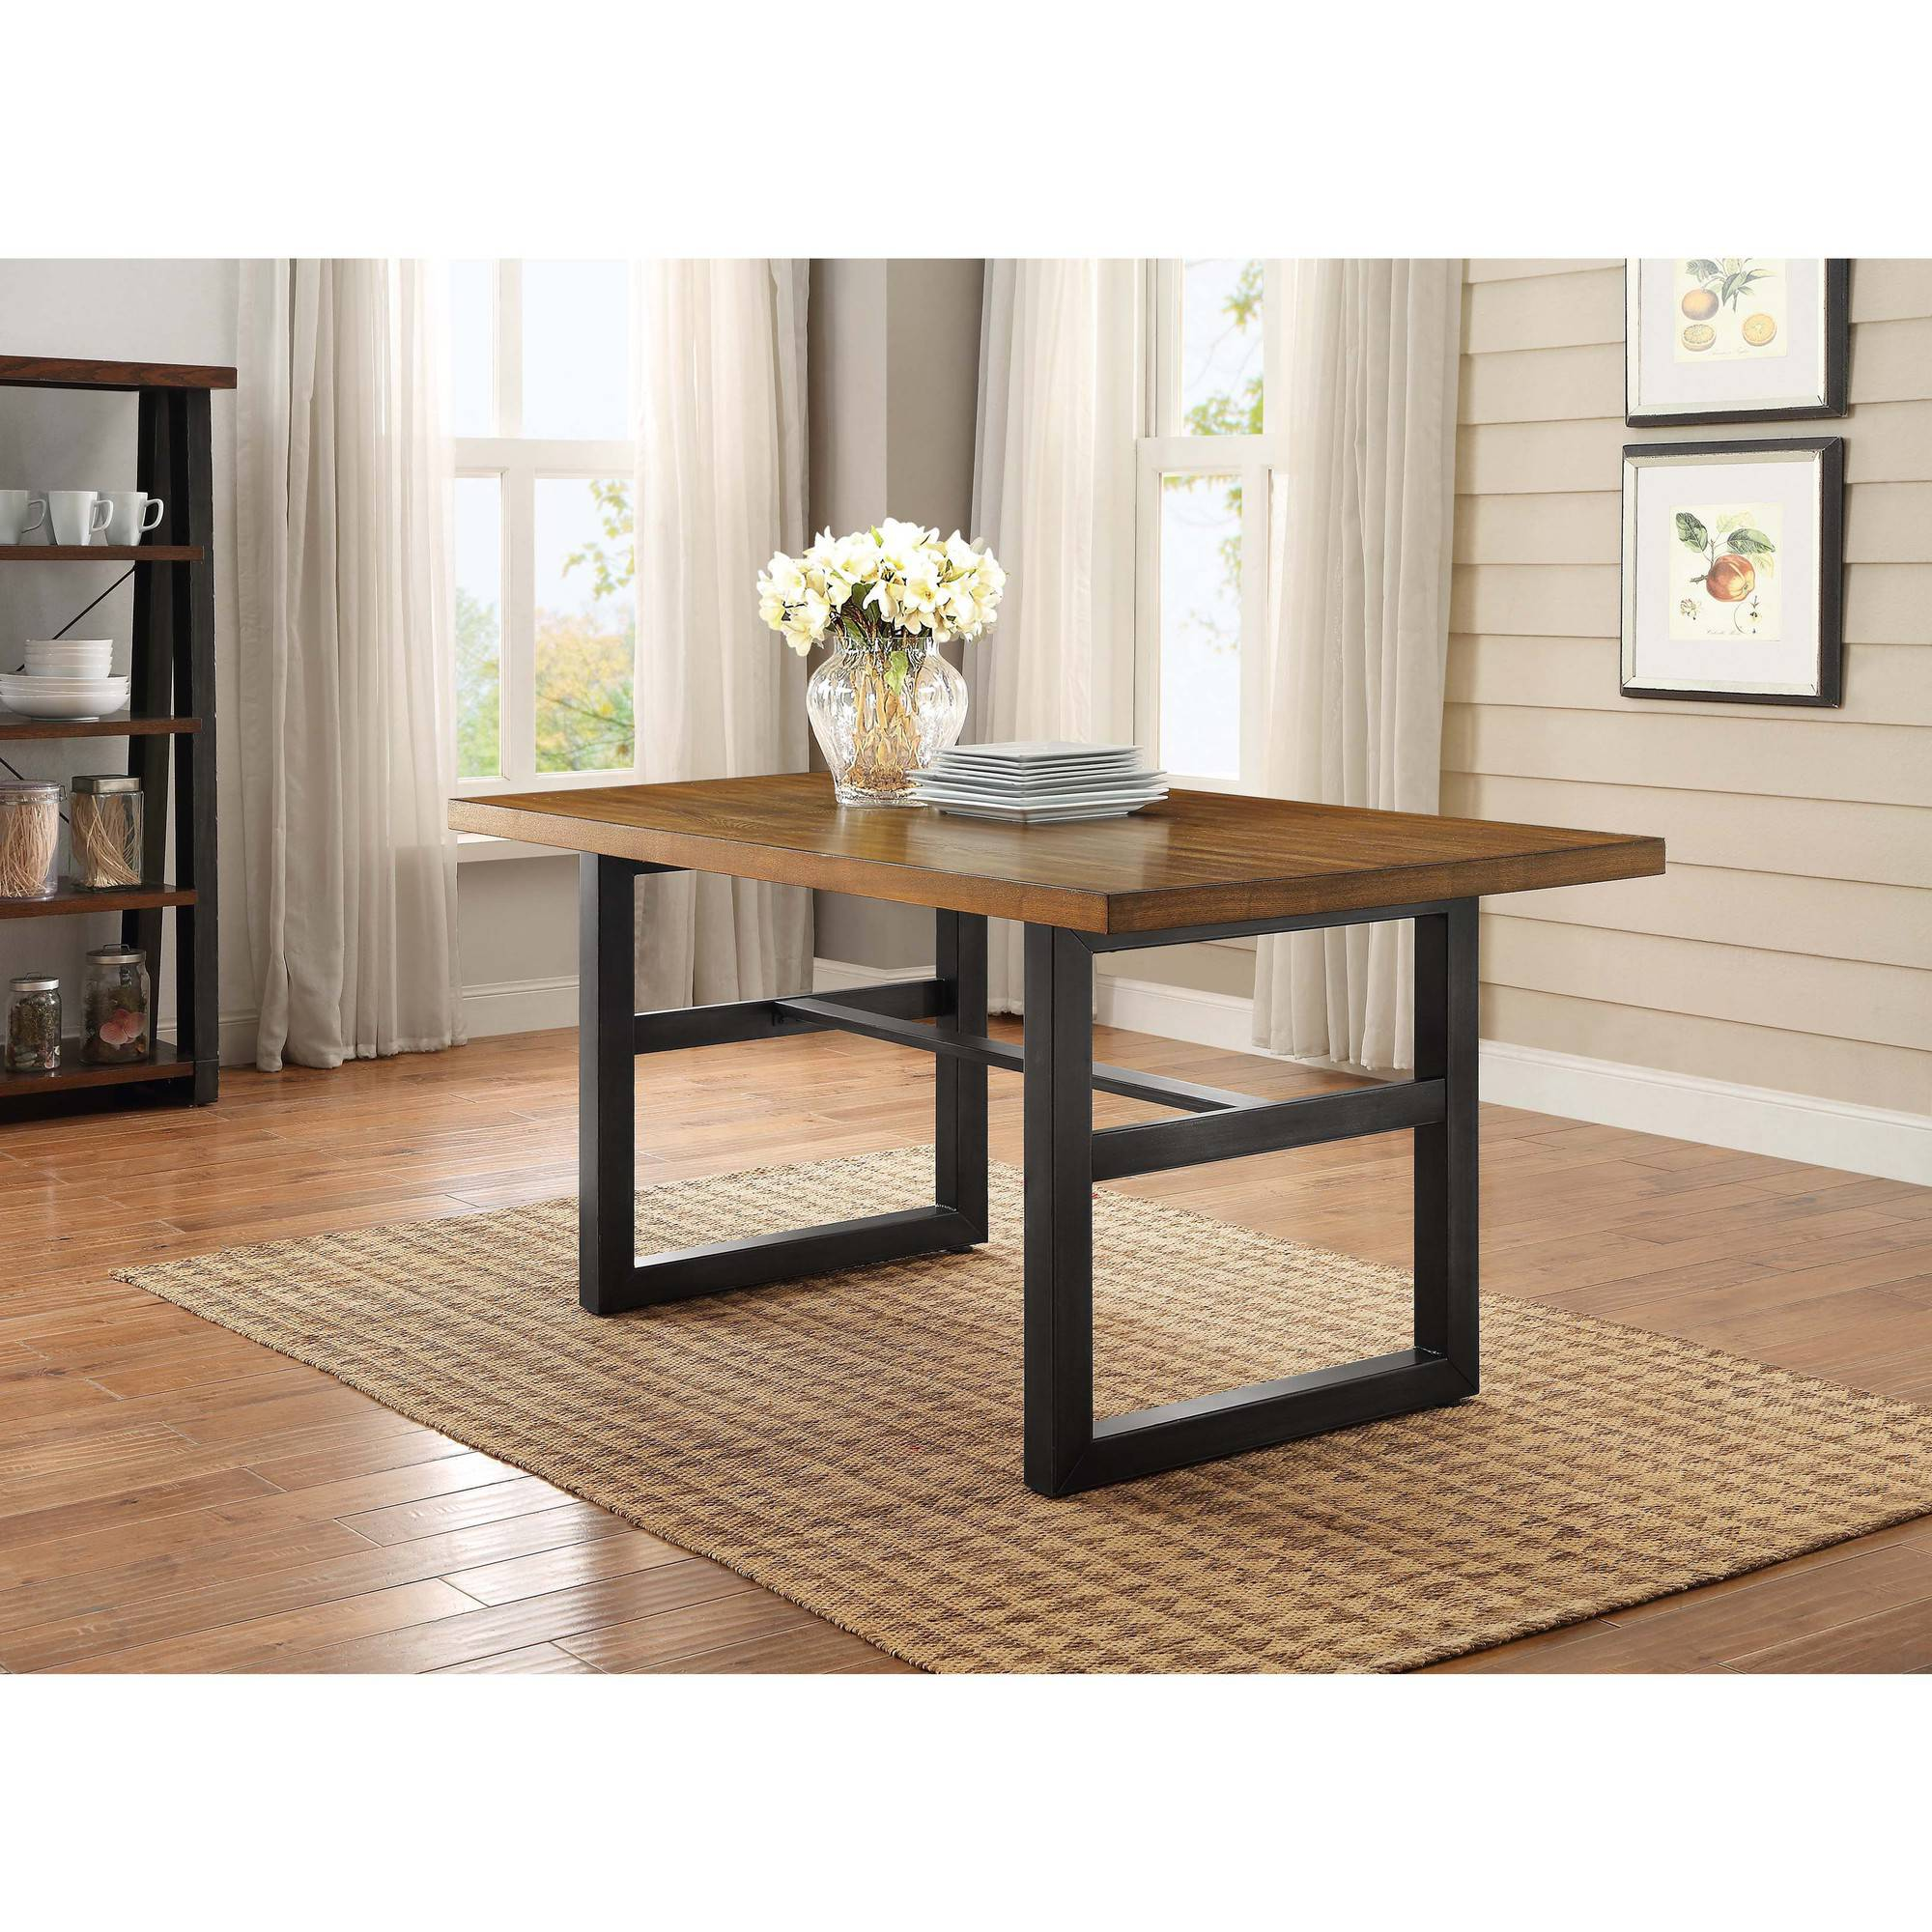 Better homes and gardens mercer dining table vintage oak finish walmart com